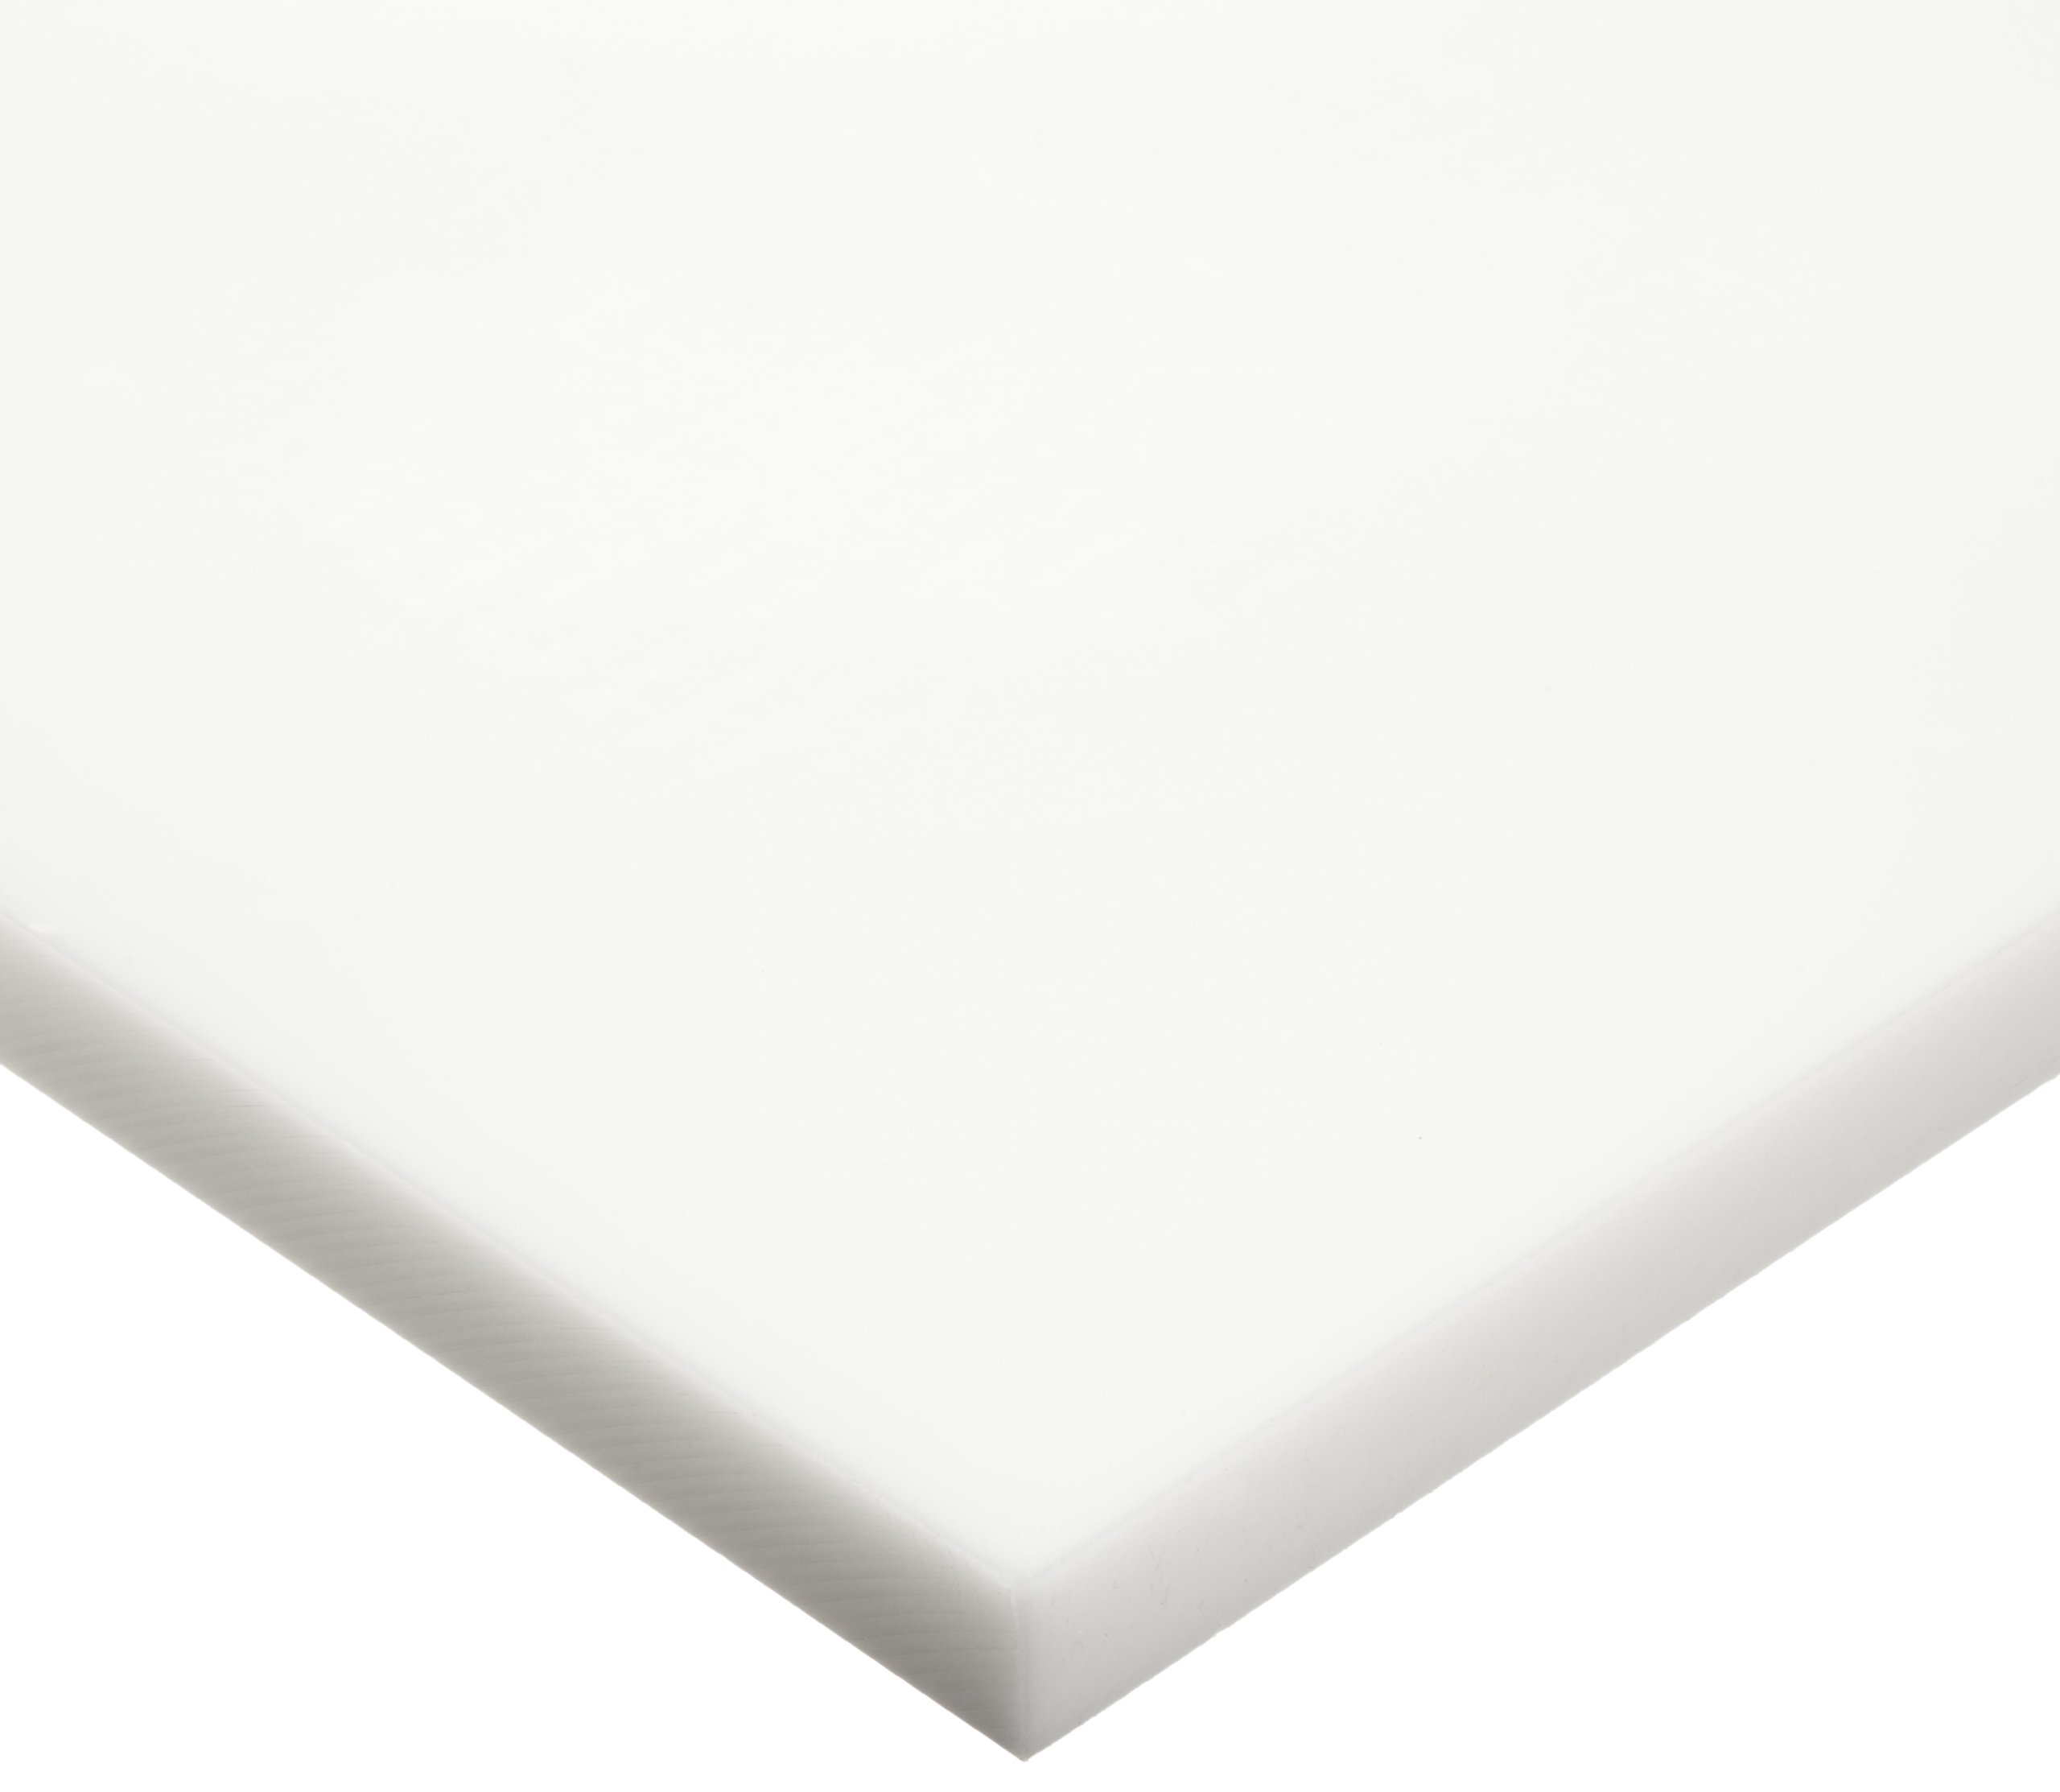 HDPE (High Density Polyethylene) Sheet, Opaque Off-White, Standard Tolerance, ASTM D4976-245, 0.500'' Thickness, 12'' Width, 24'' Length by Small Parts